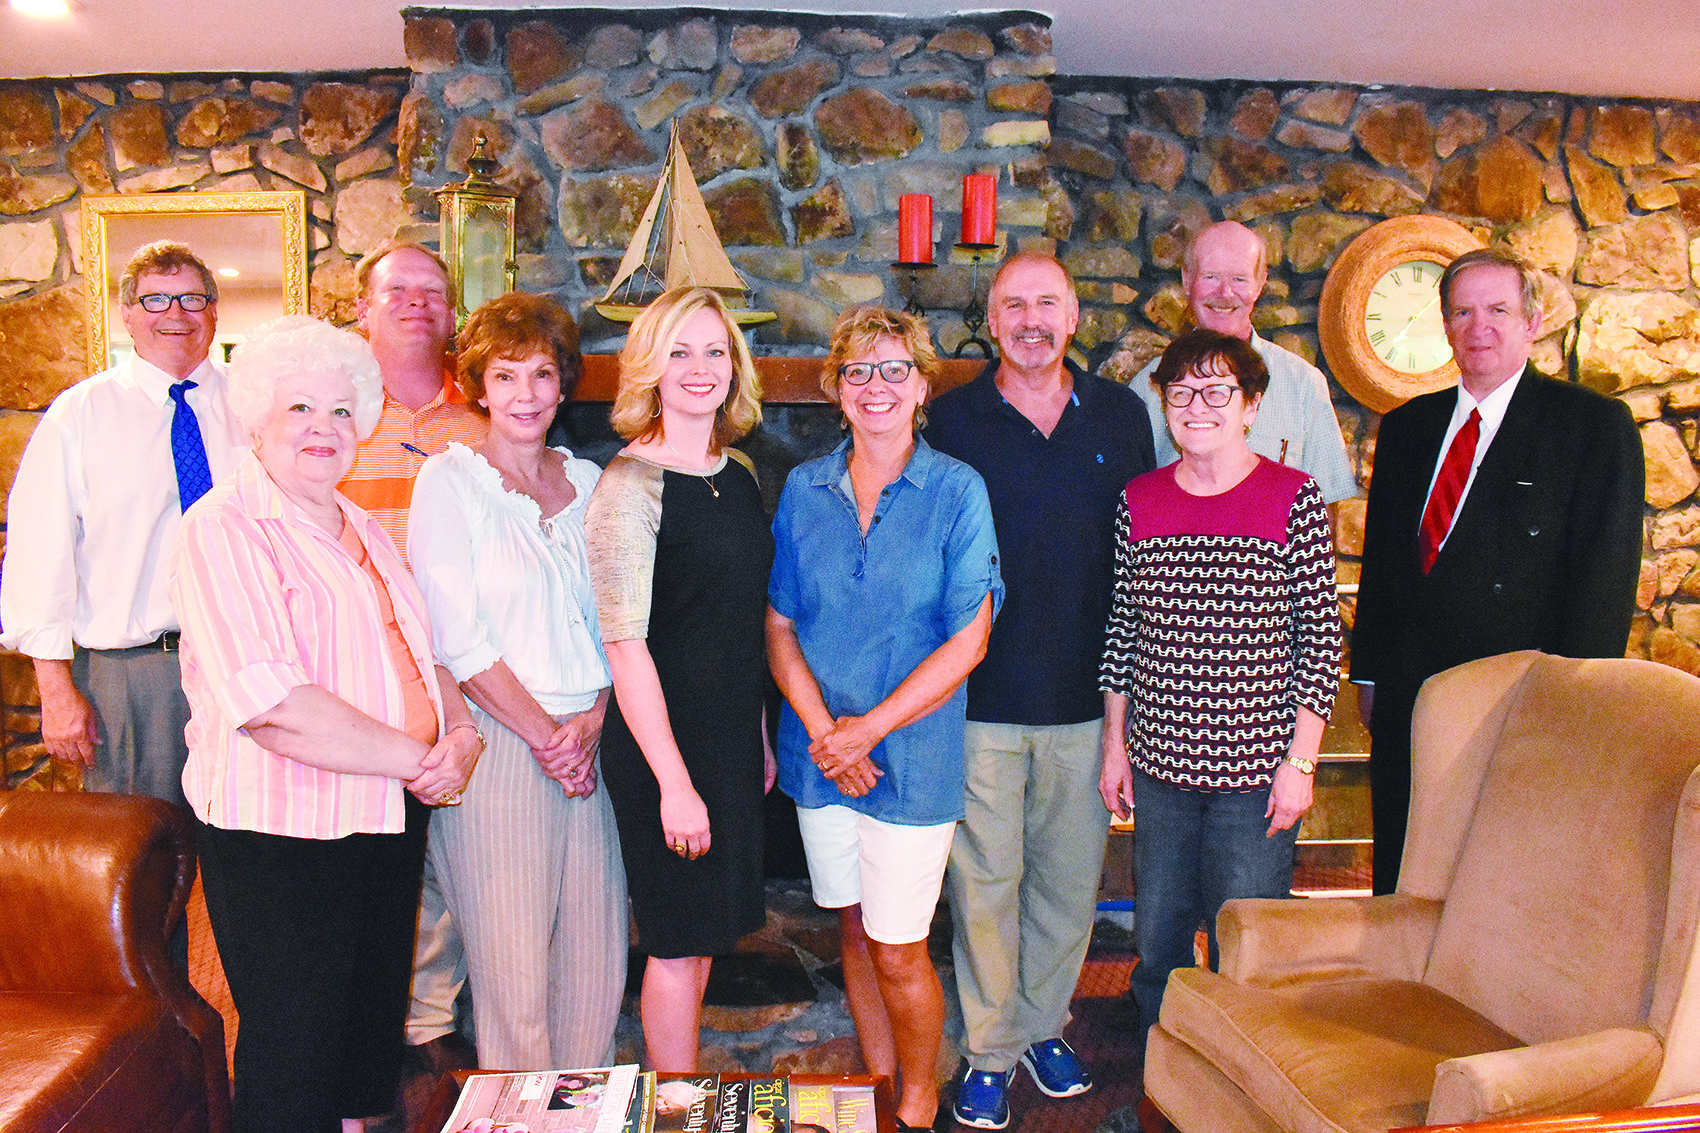 The Winston County Arts Council received $5,000 from the Alabama Bicentennial Commission, which is mostly being used for bicentennial-themed Christmas ornaments that will be made by school children across Winston County. Among the arts council members celebrating the grant at their June 25 meeting at Lakeshore Inn in Double Springs are, from left, state Rep. Tim Wadsworth, Shirley Sudduth, Winston County Commissioner David Cummings, Blythe Welton, Meek High School Principal Marla Murrah, Susan Ripp, Joe Towey, Sandra Heaven, arts council treasurer Larry Welton and chairman J.D. Snoddy.